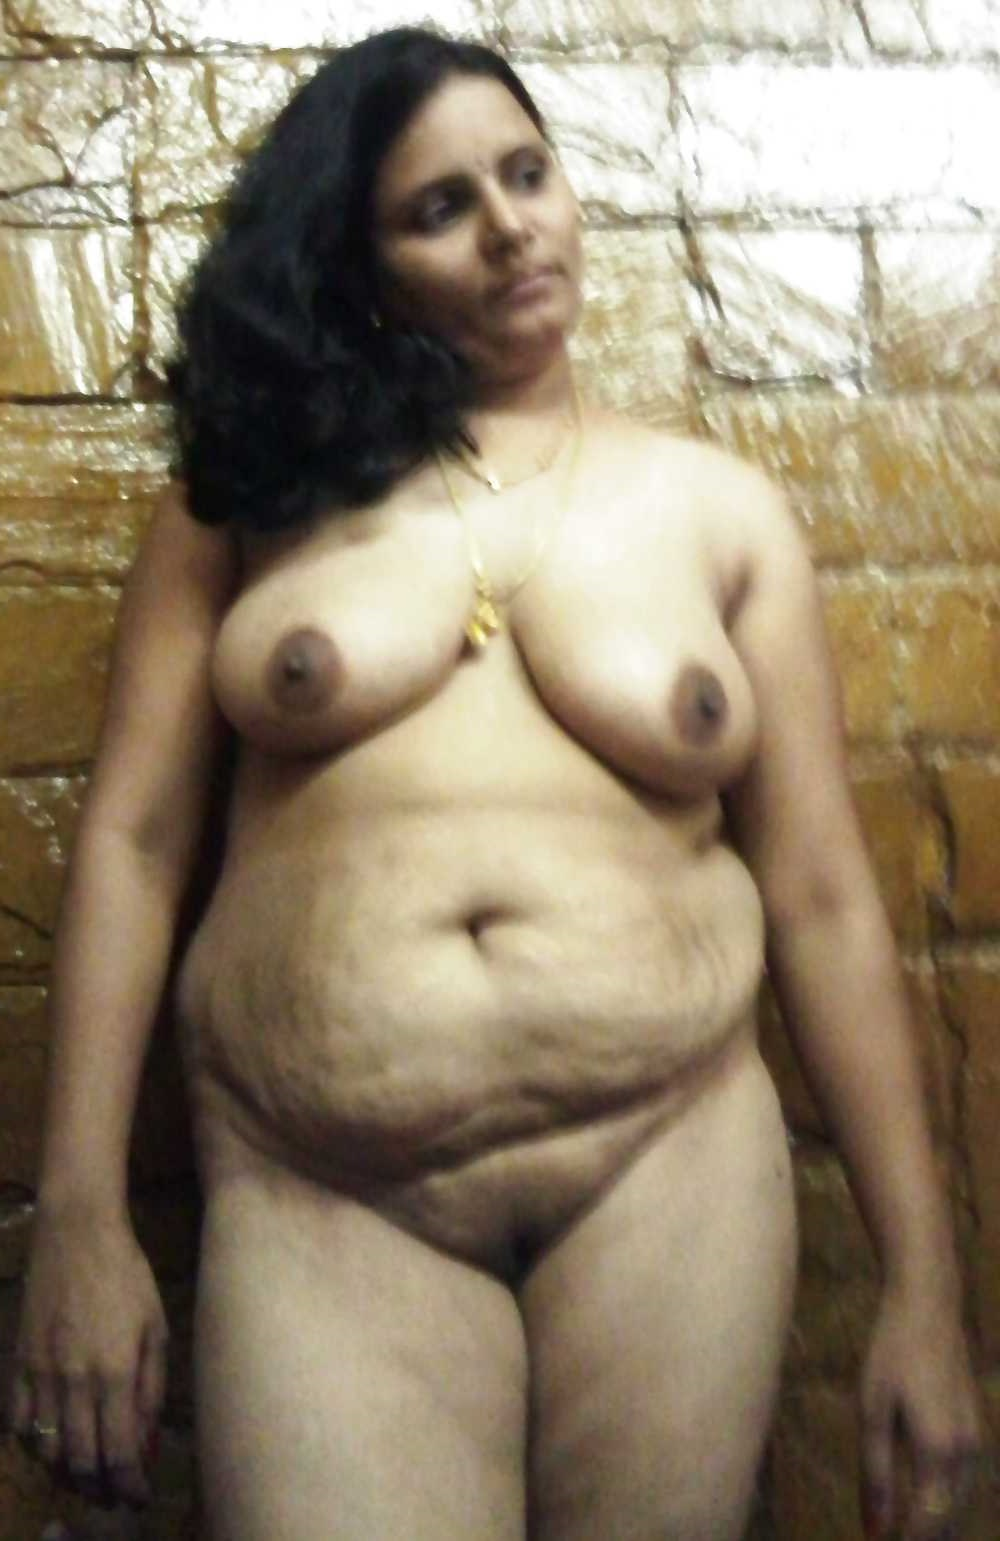 Indian Desi Aunty And Bhabhi Nude Photo: Nagpur Wali ...